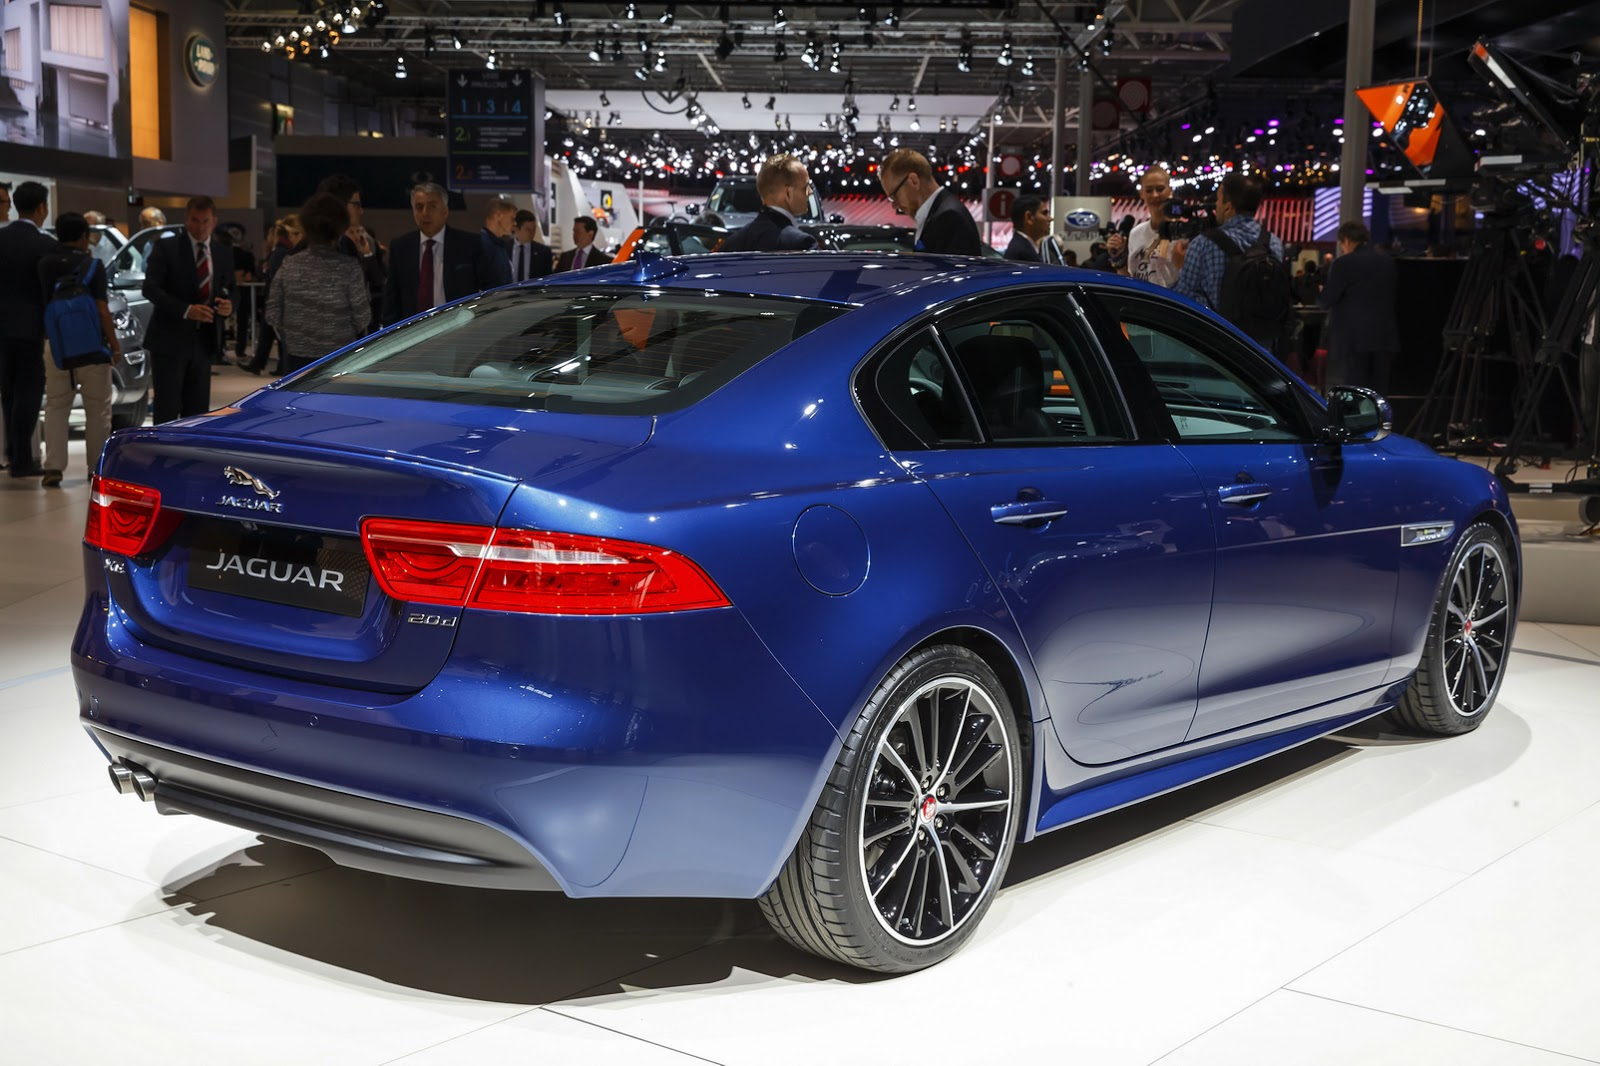 2016 jaguar xe makes grand entrance in paris 120 photos carscoops. Black Bedroom Furniture Sets. Home Design Ideas